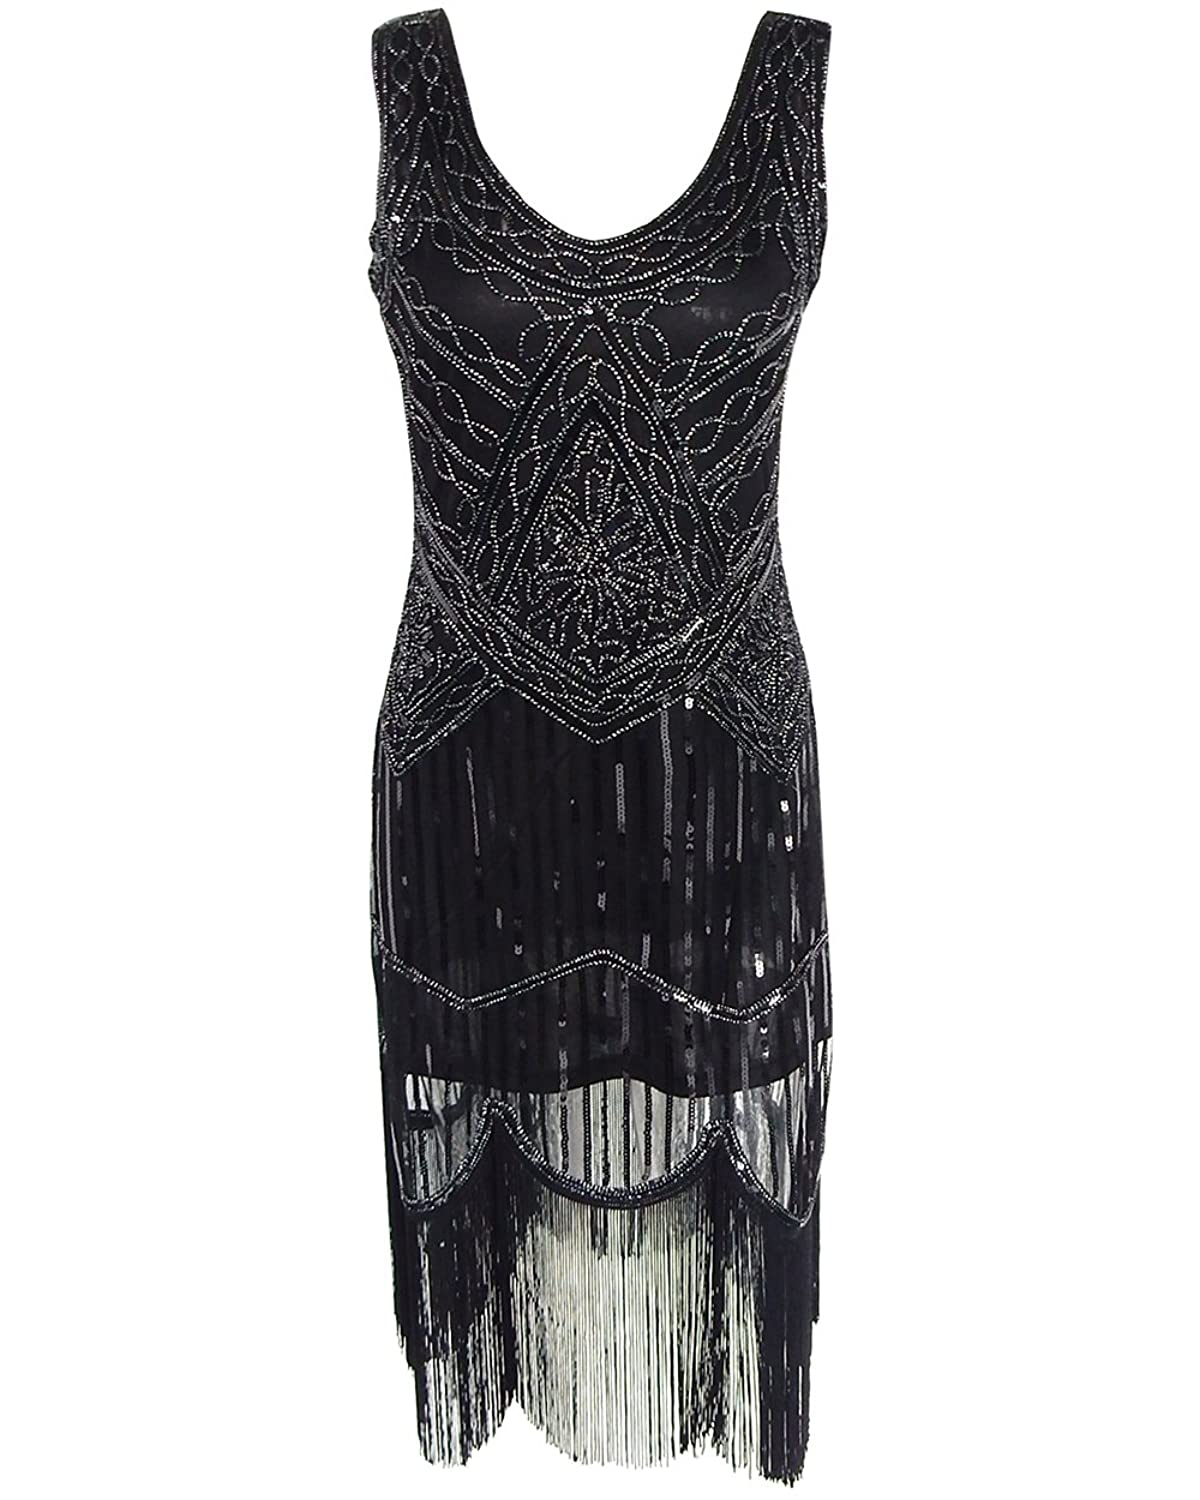 Zhihui Women's 1920s Gatsby Sequin Beads Art Deco Fringed Cocktail Flapper Dress